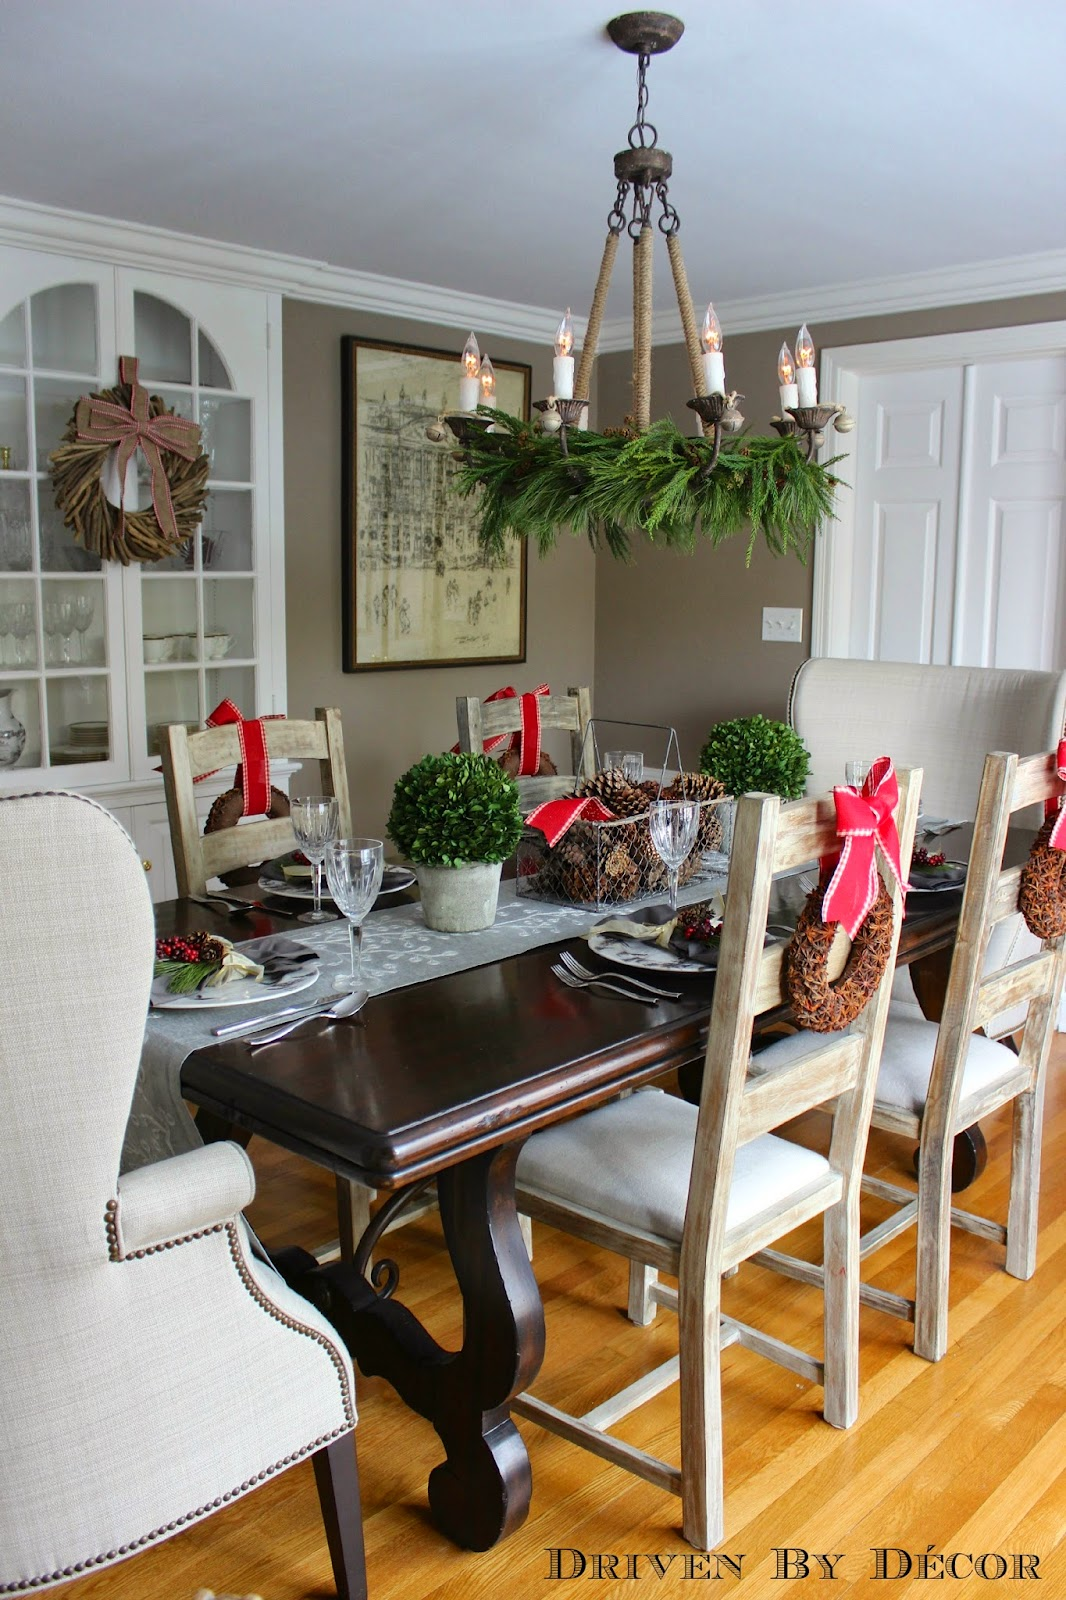 Our christmas home tour driven by decor - Christmas room decor ideas ...